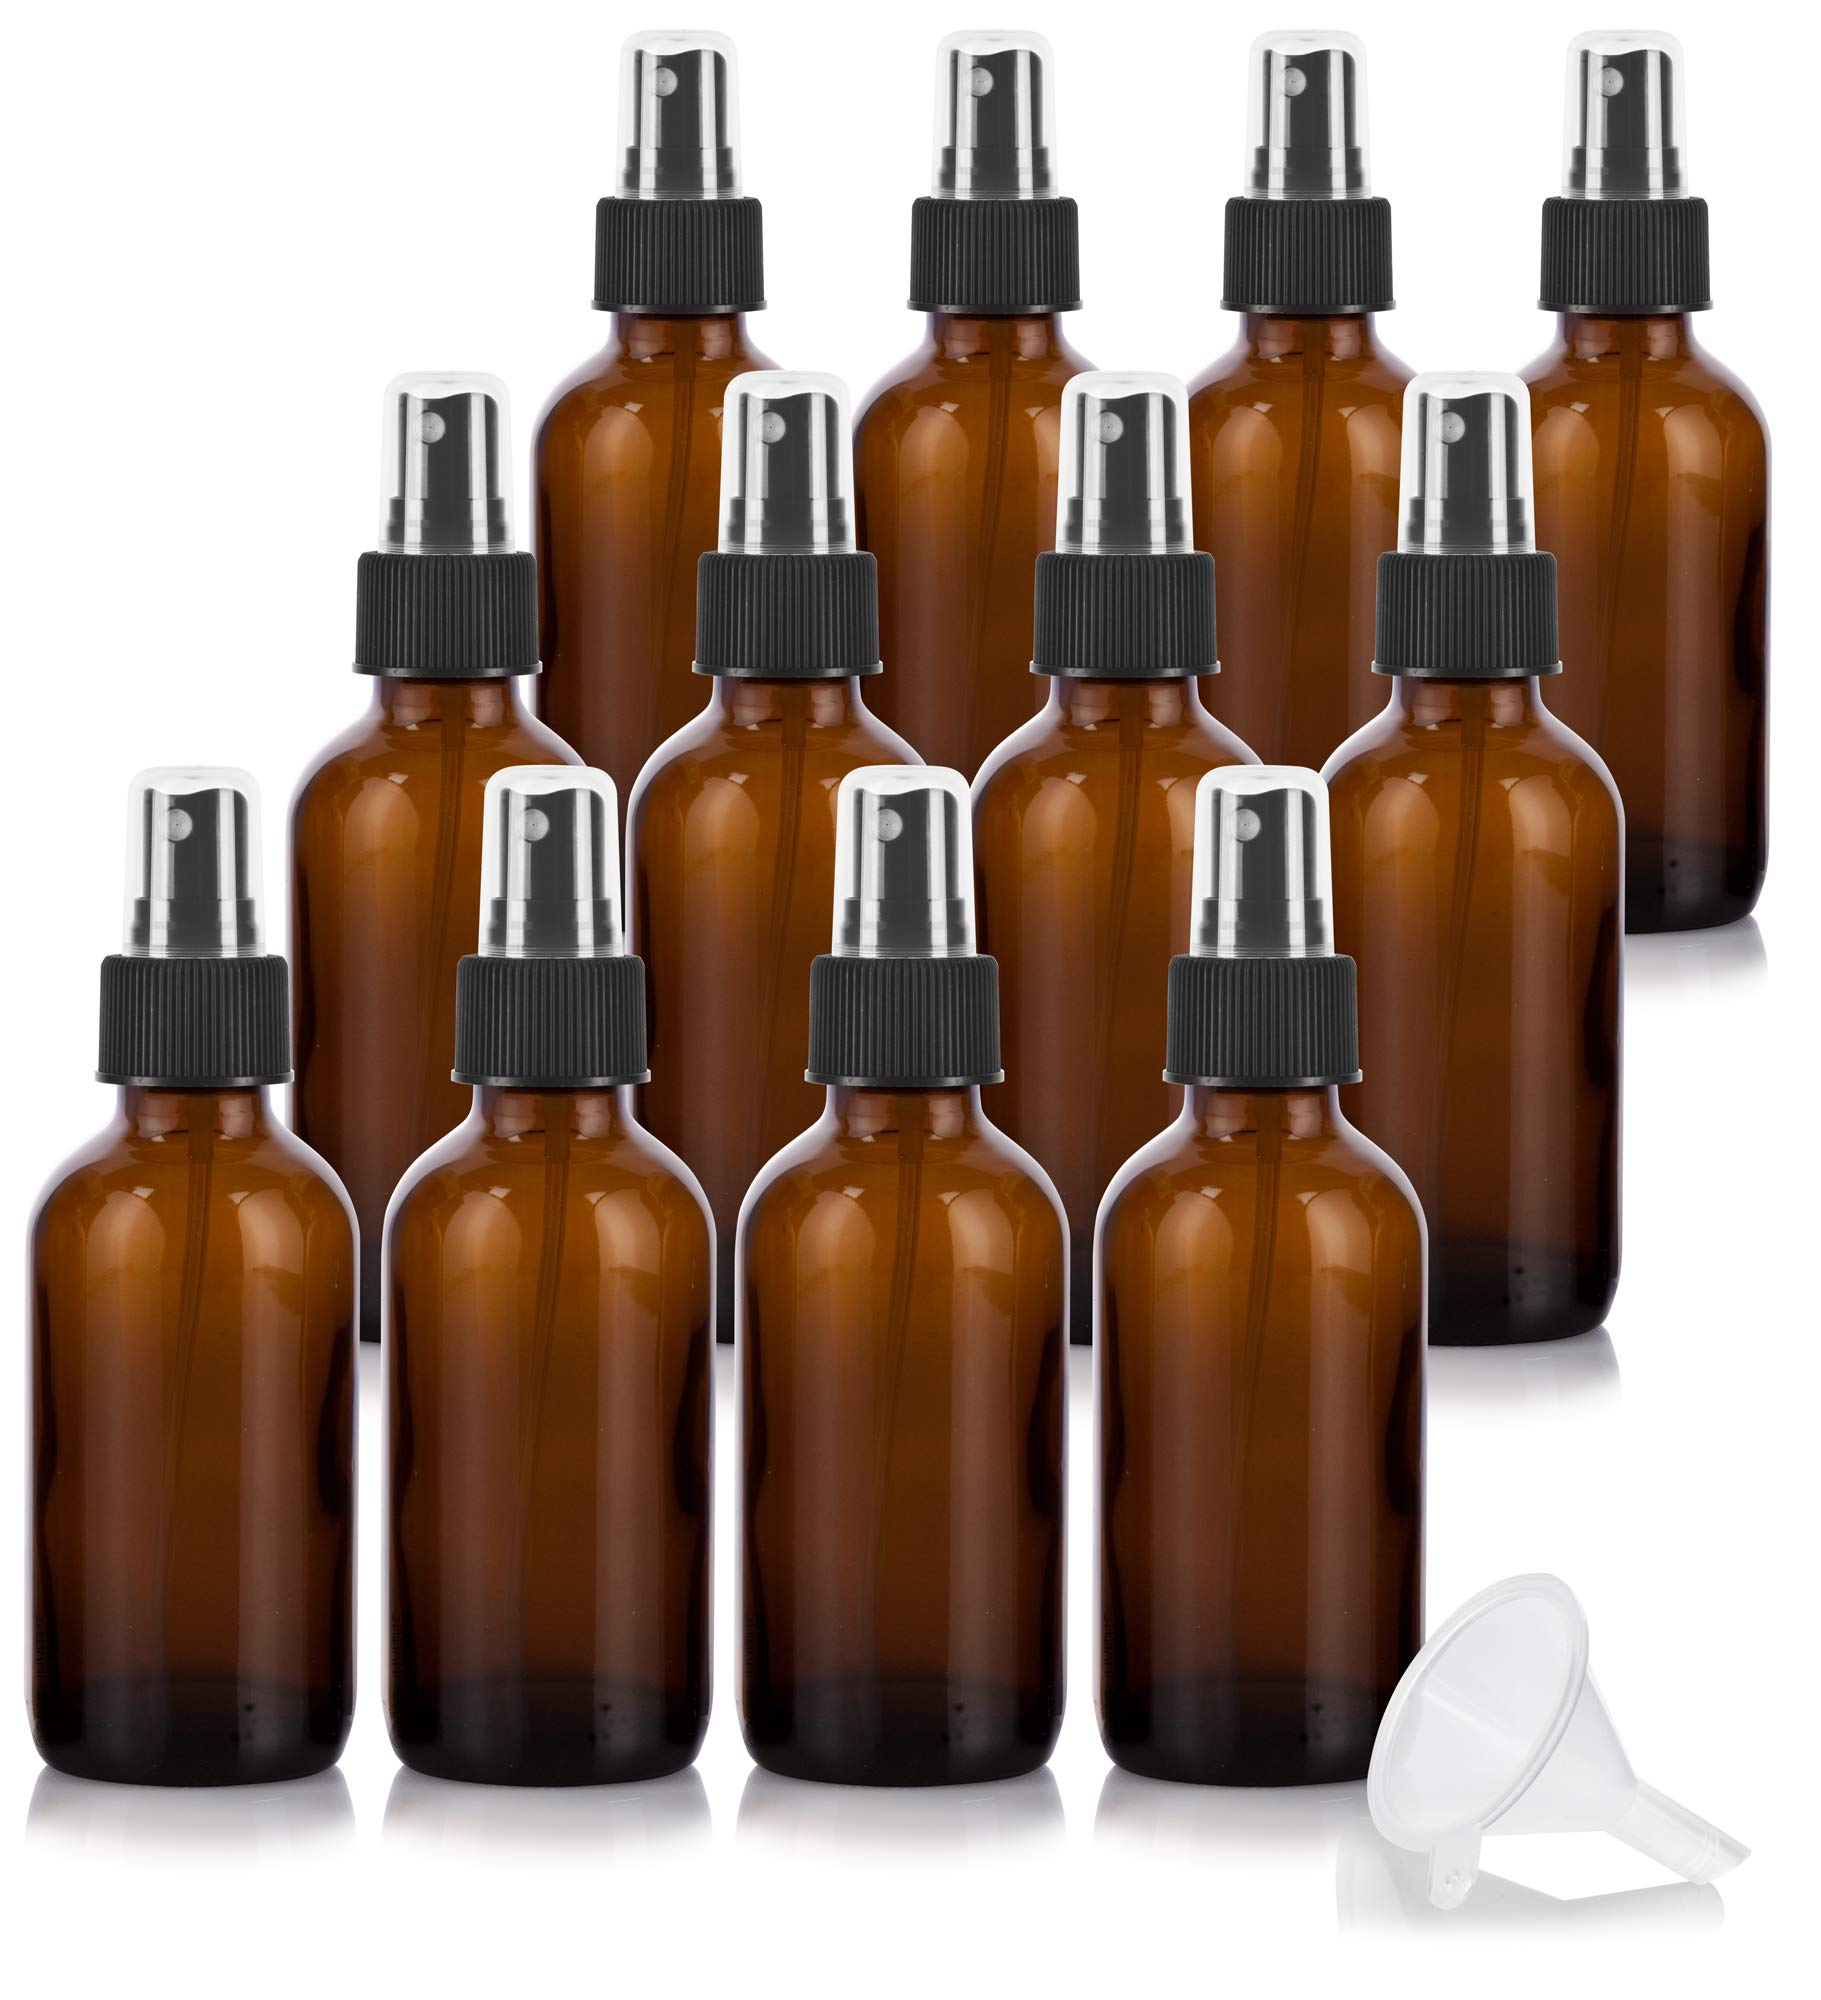 4 oz Amber Glass Boston Round Fine Mist Spray Bottle (12 Pack) + Funnel for Essential Oils, Aromatherapy, Food Grade, bpa Free by JUVITUS